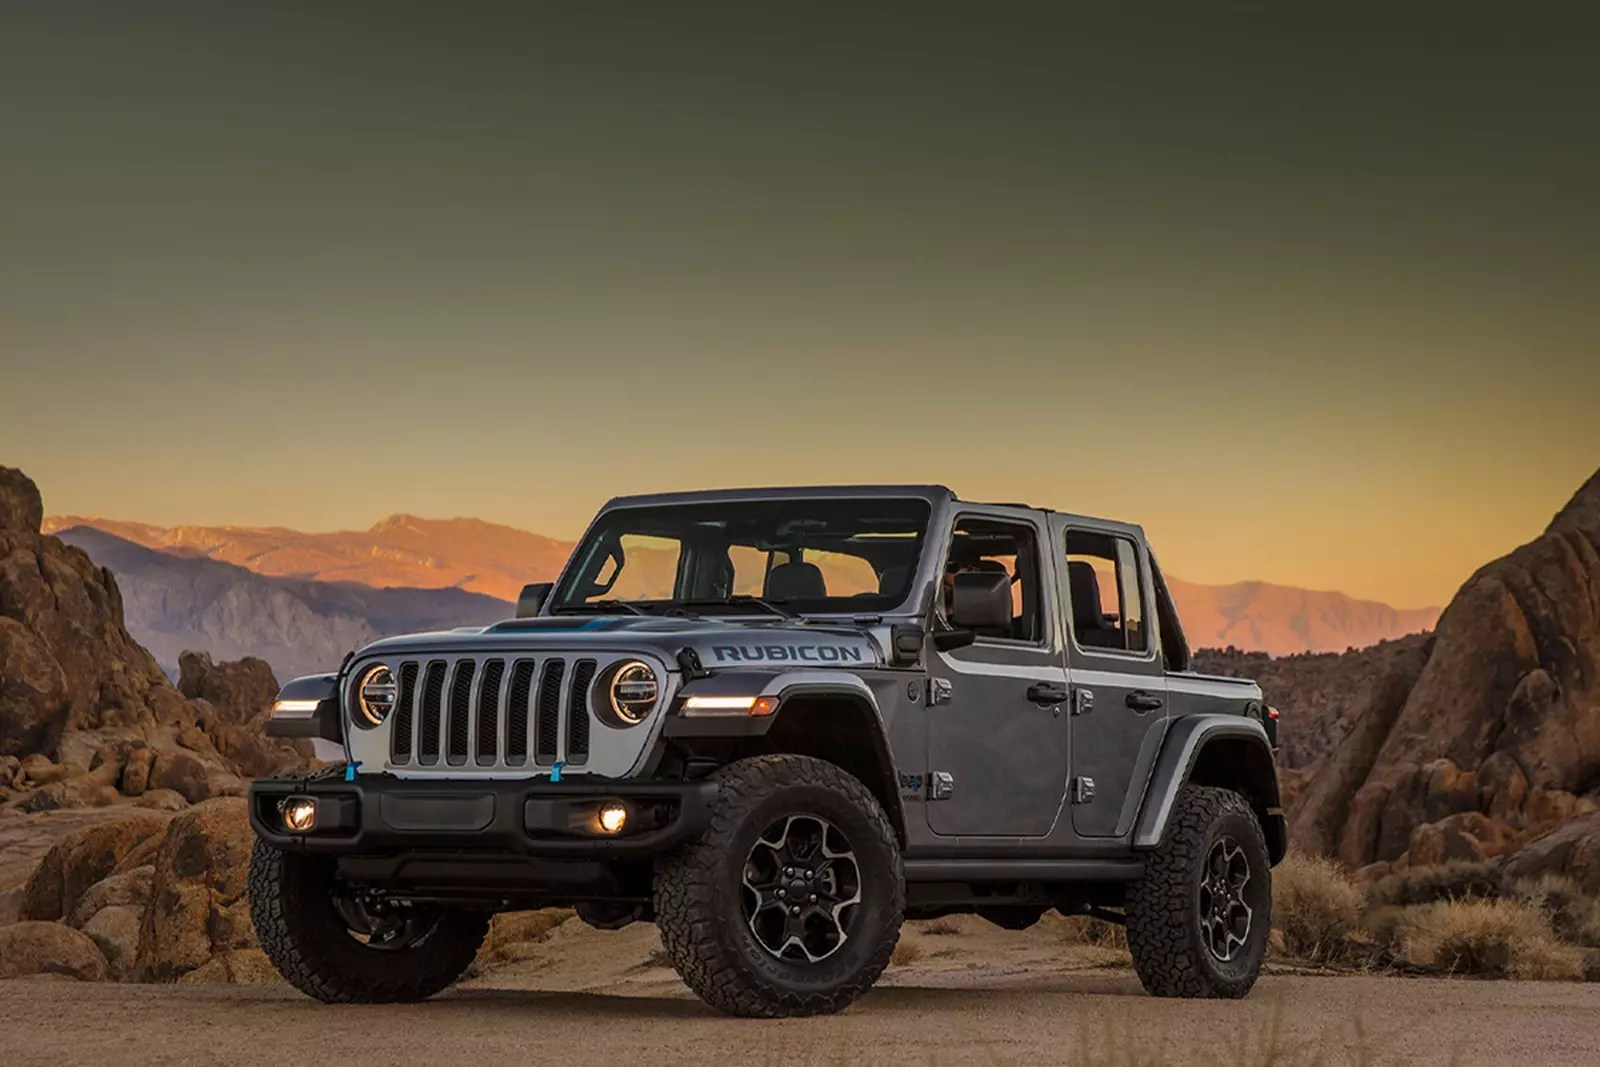 Find jeep accessories in canada   visit kijiji classifieds to buy, sell, or trade almost anything! Jeep's Electric Wrangler Signals a Green Future for Off